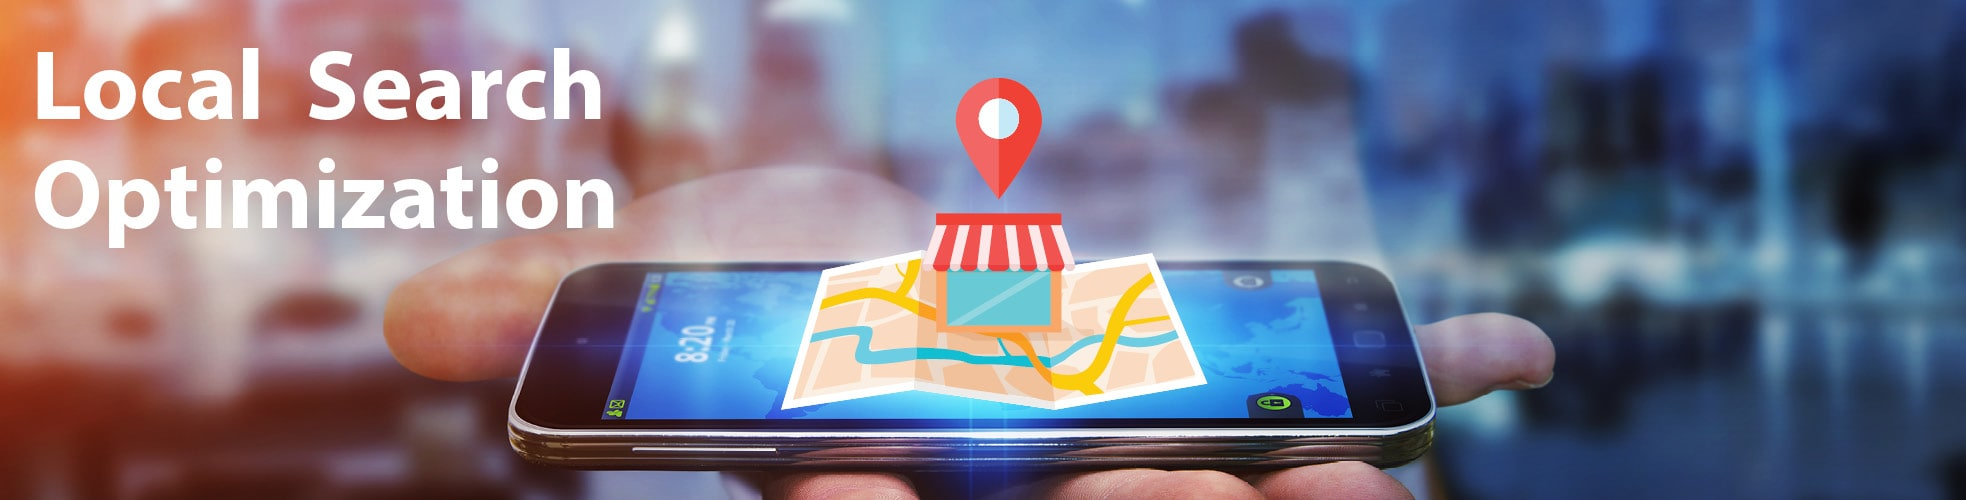 local search optimization | LMS Solutions